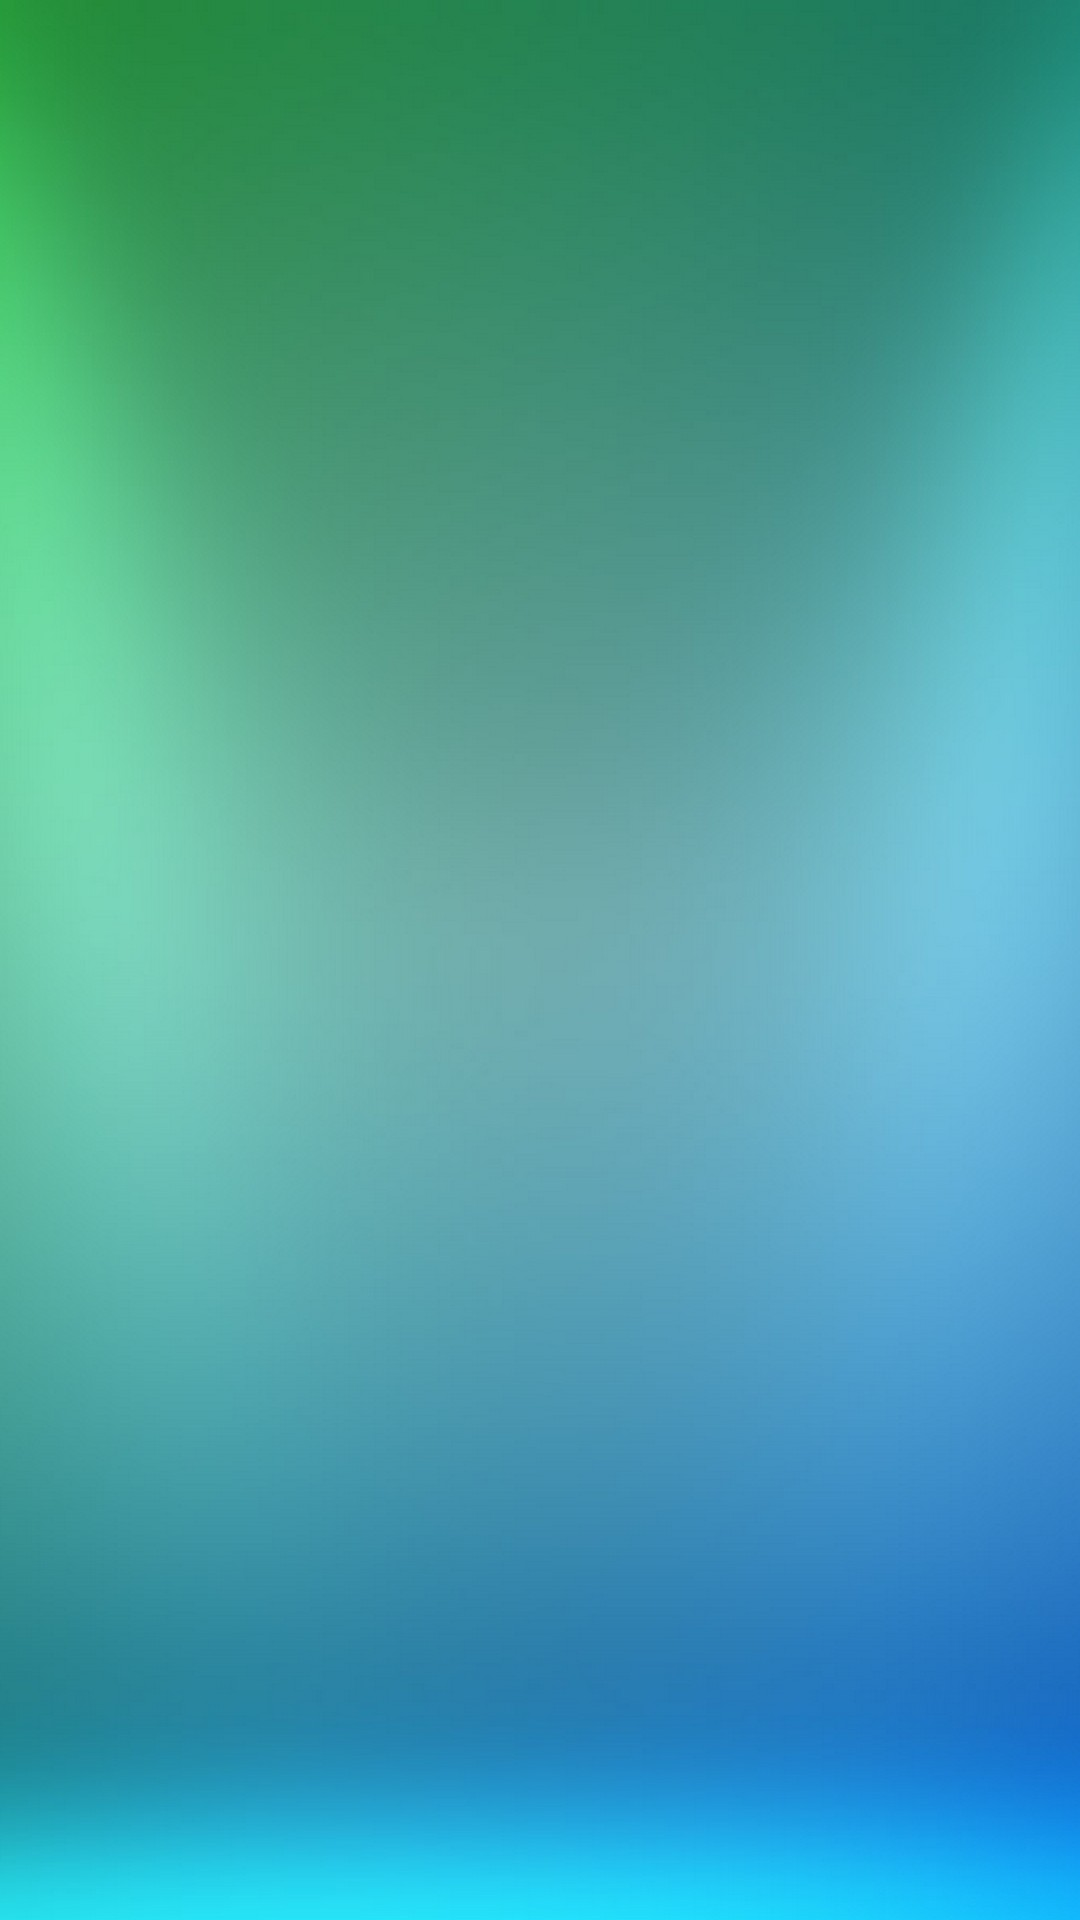 Mobile Wallpapers Blue and Green with image resolution 1080x1920 pixel. You can make this wallpaper for your iPhone 5, 6, 7, 8, X backgrounds, Mobile Screensaver, or iPad Lock Screen